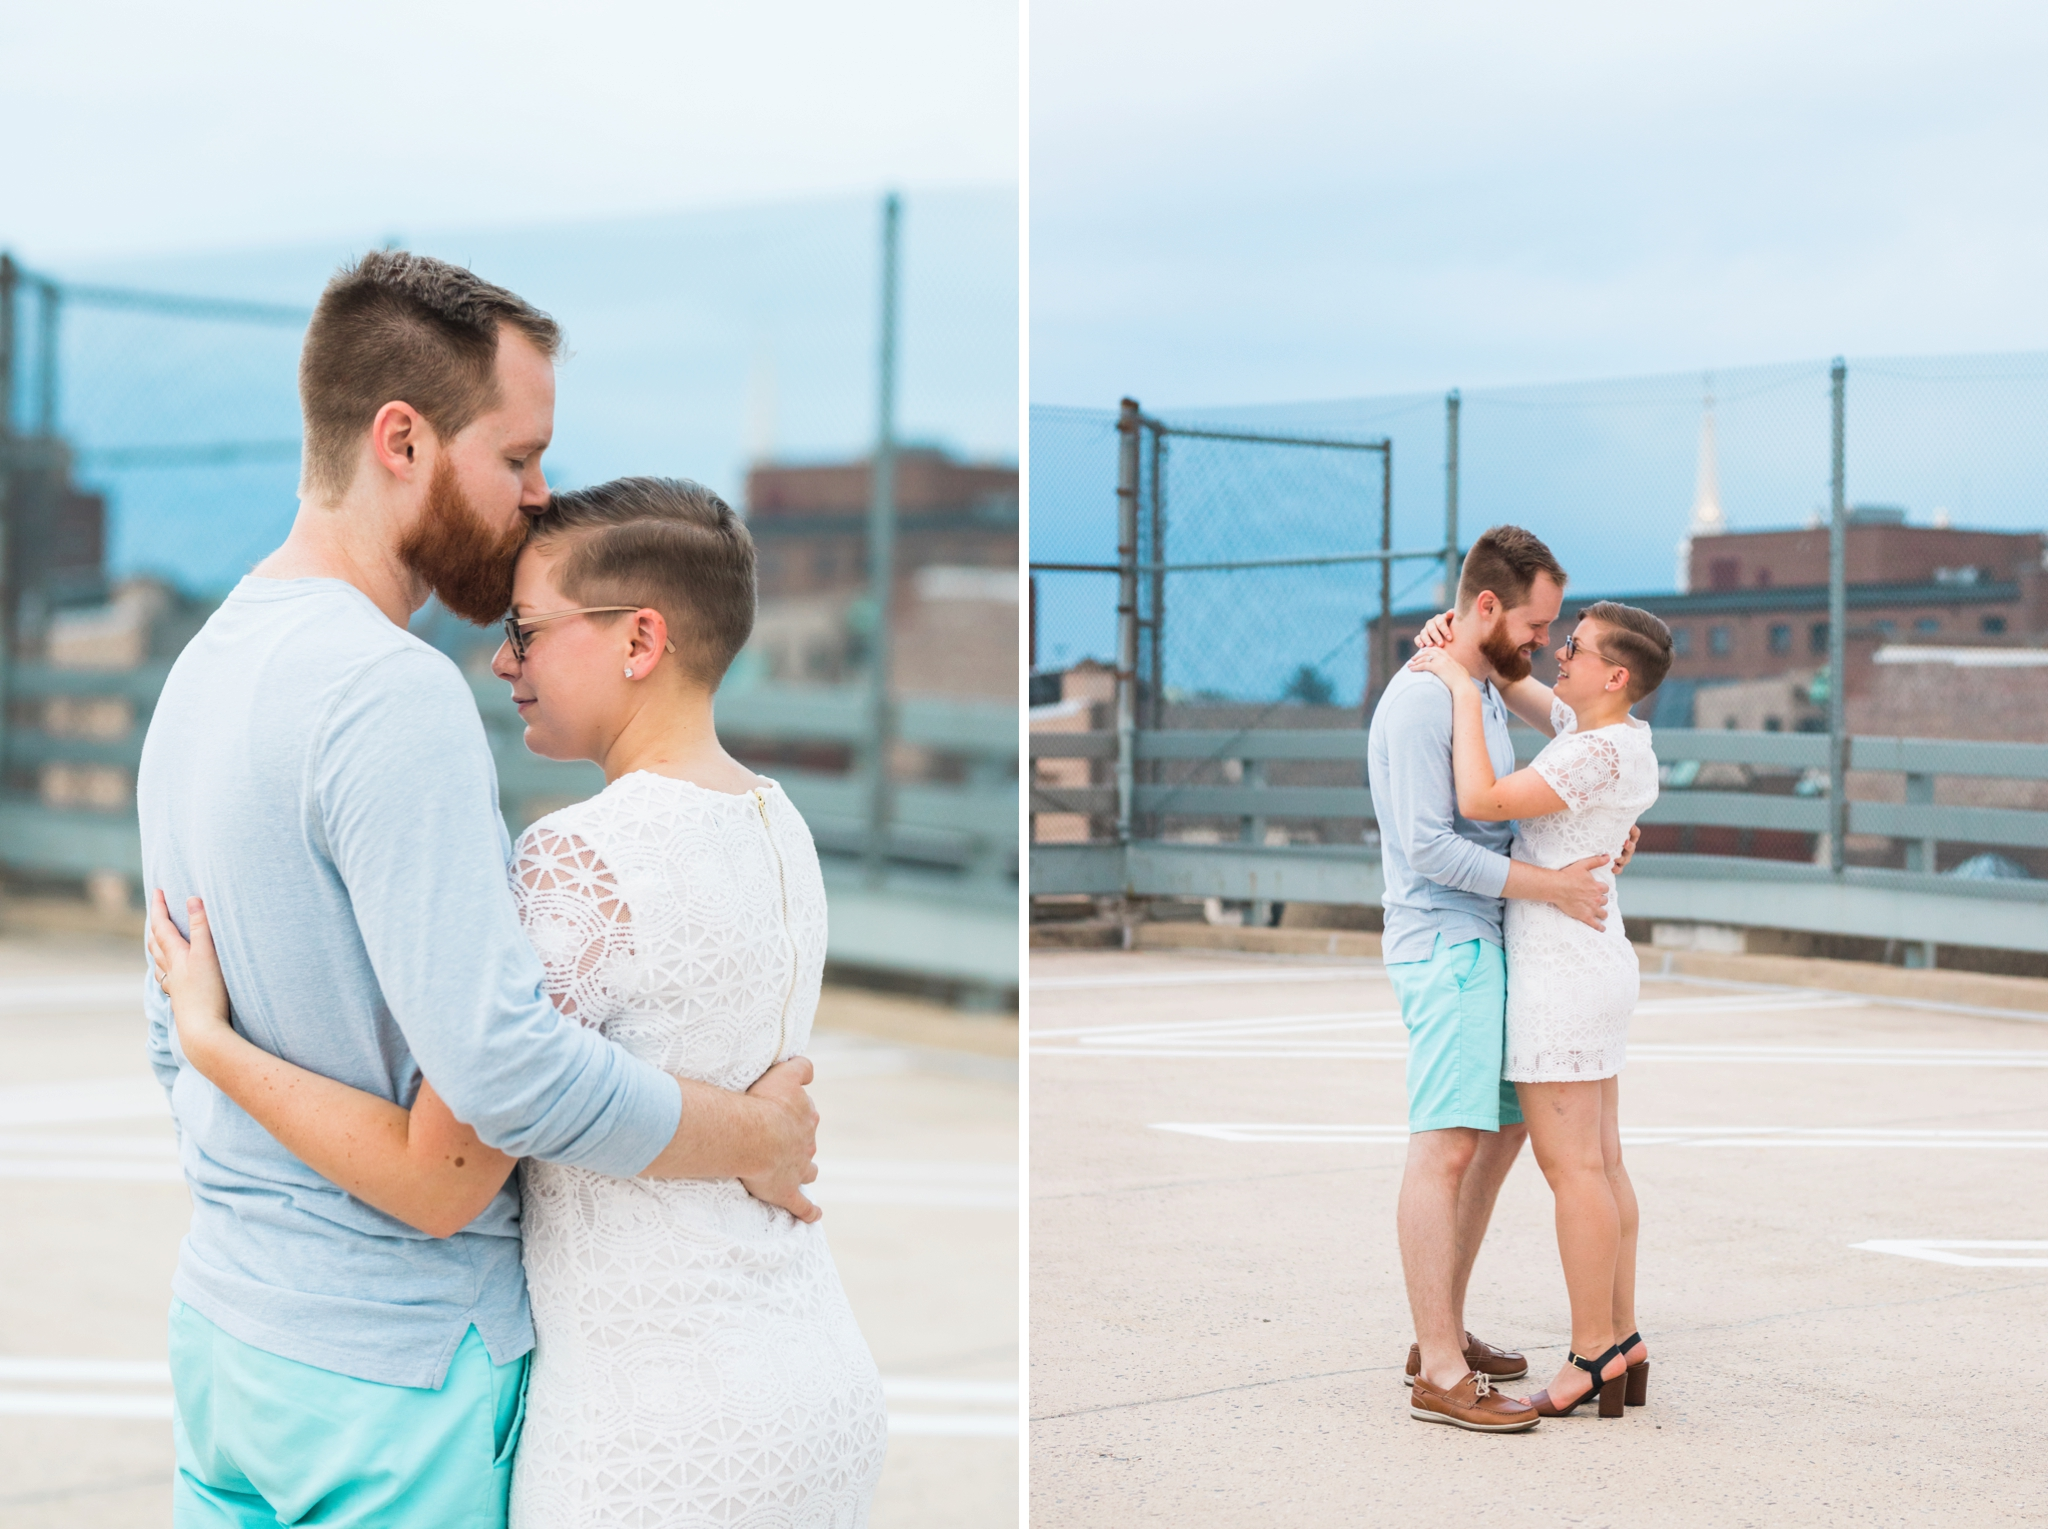 Emily Grace Photo, The Booking House Wedding, Manheim Wedding Venue, Lancaster PA Wedding Photographer, Downtown Lancaster City Engagement Session, Prince Street Garage Engagement Session